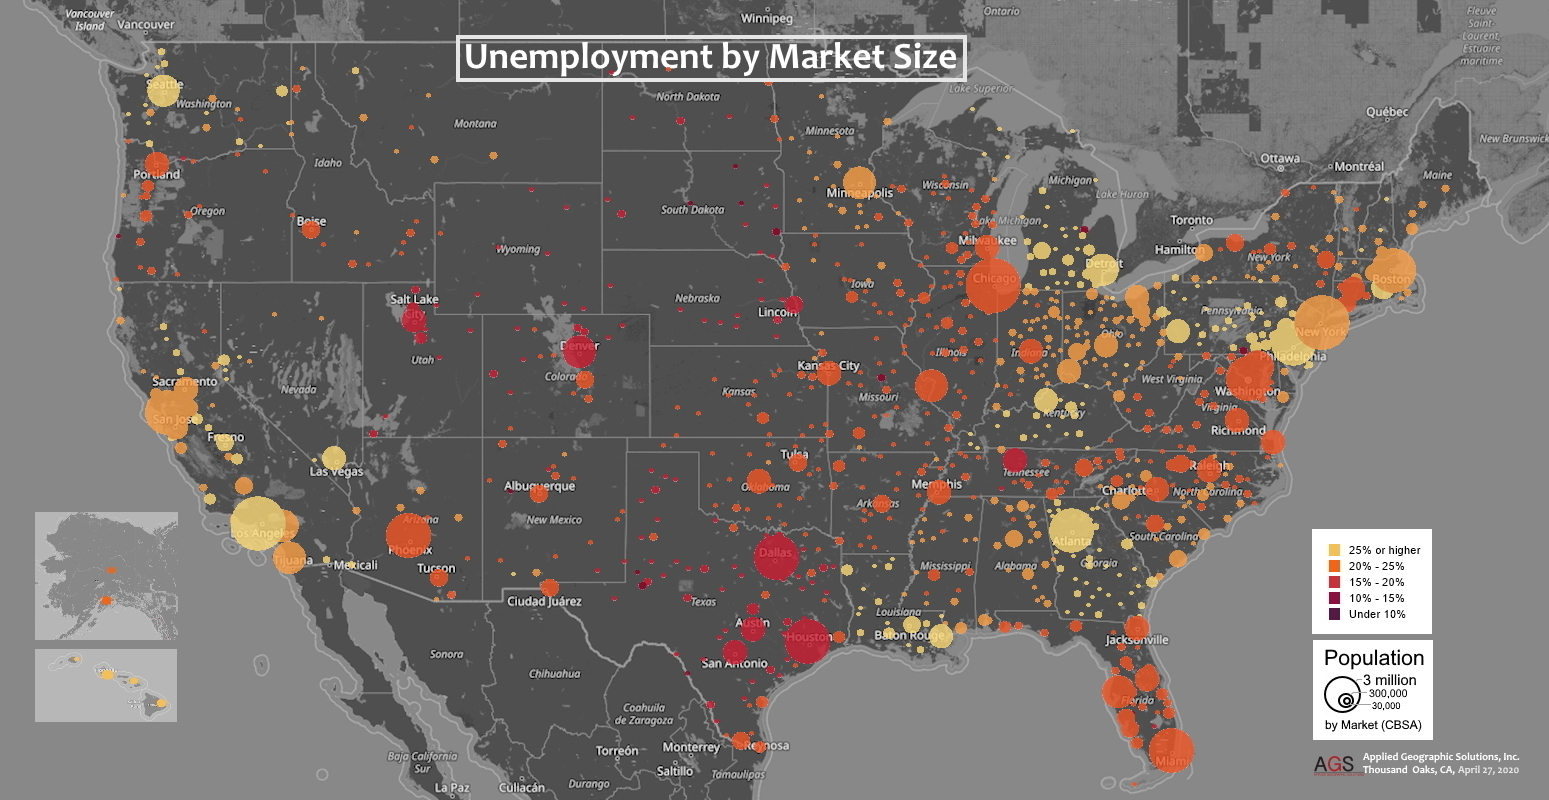 Unemployment by Market Size_4-27-2020 (002)